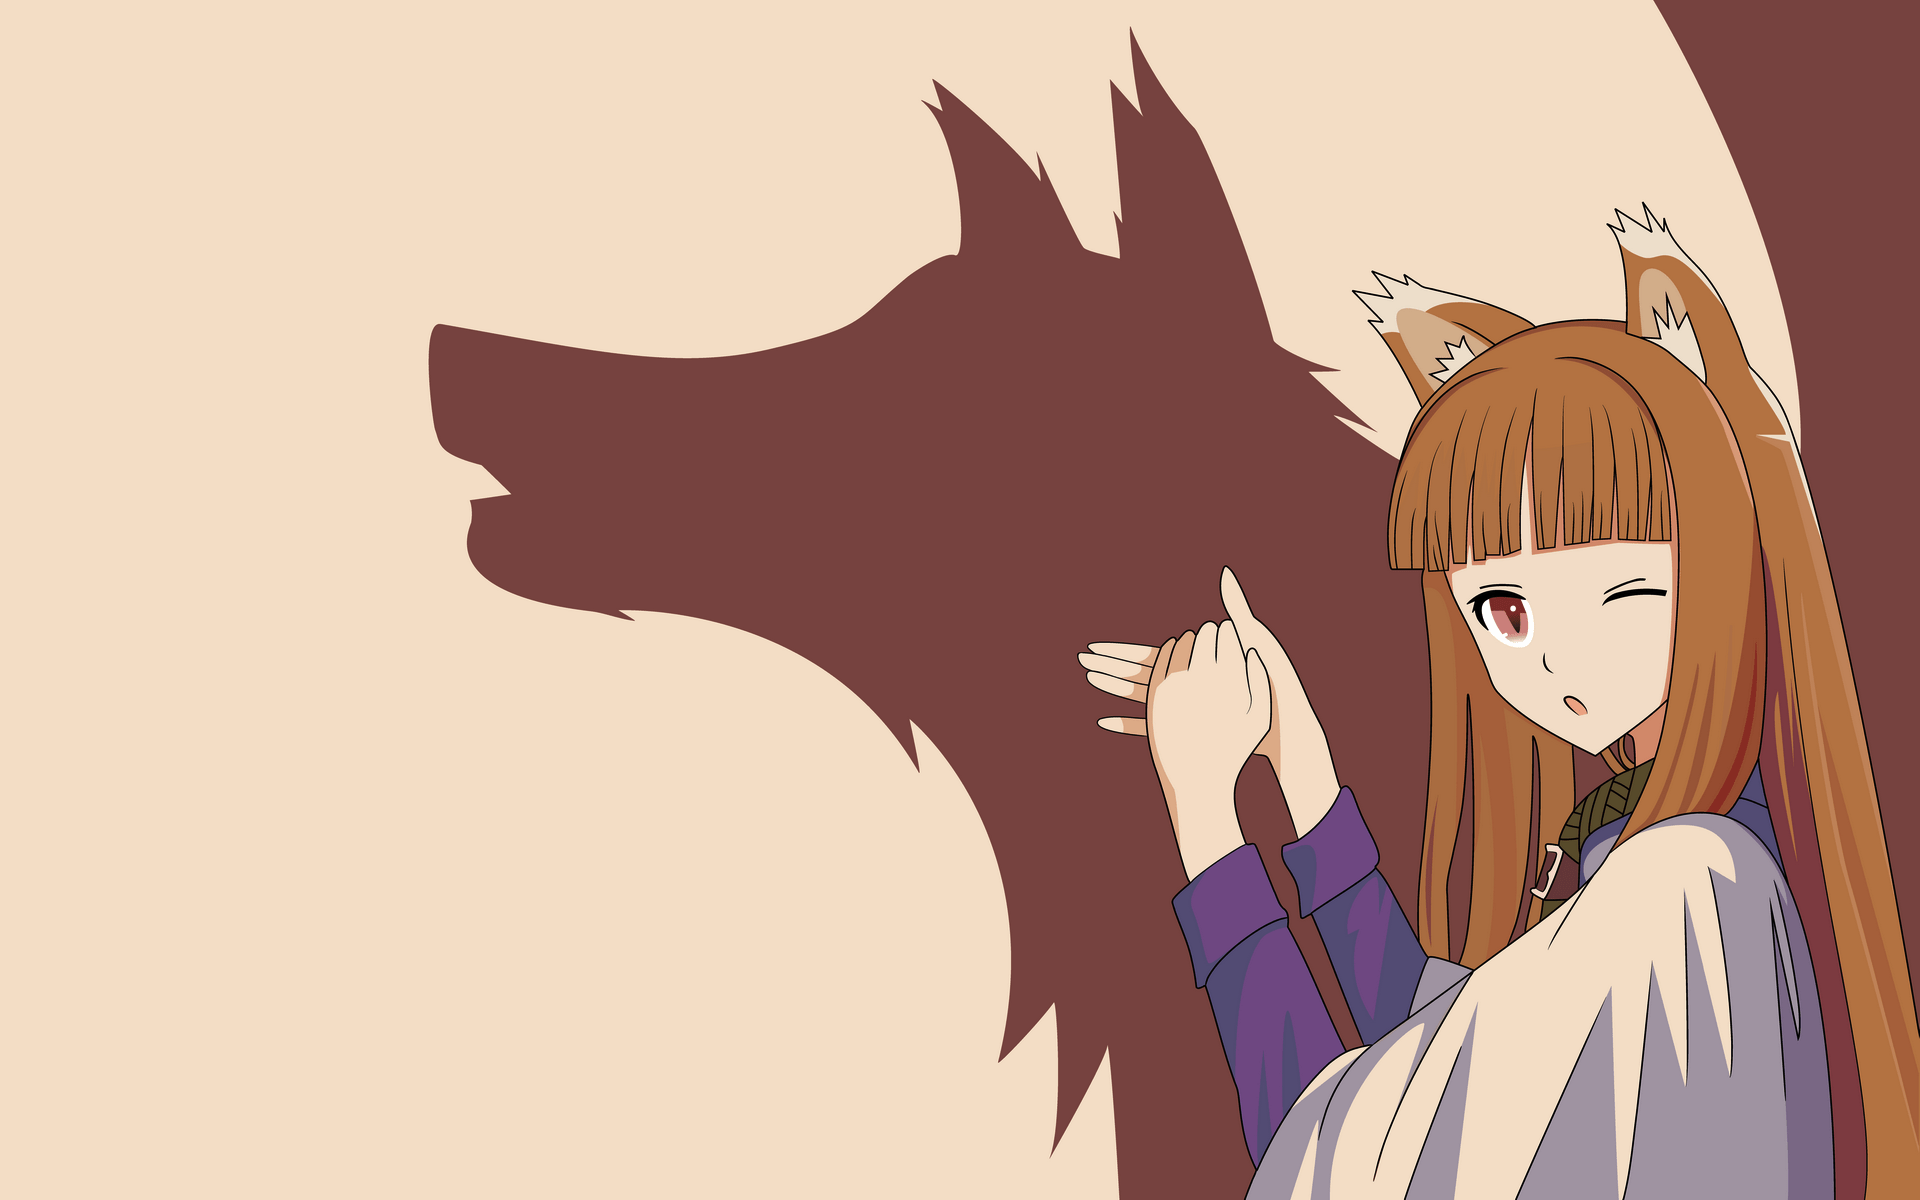 Cute Girl Wallpaper For Facebook Timeline Spice And Wolf Full Hd Wallpaper And Background Image